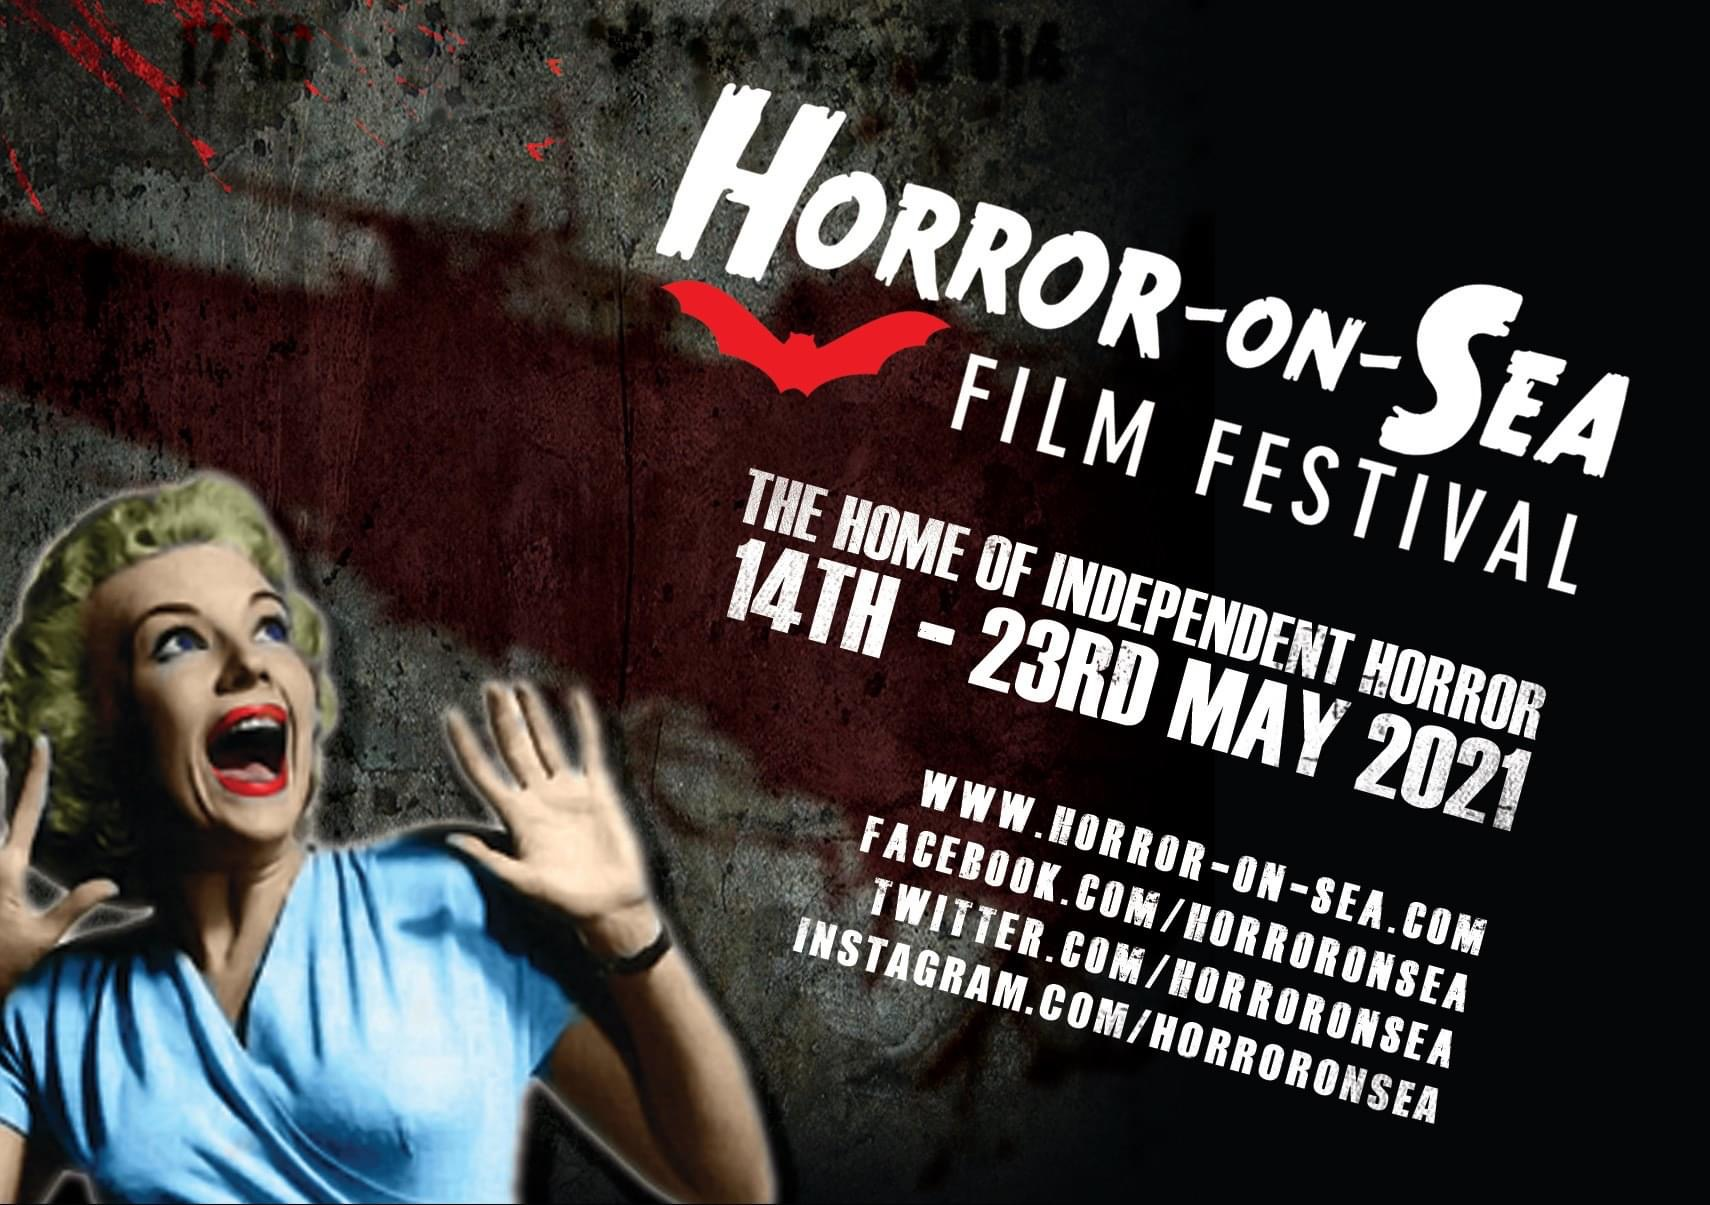 Cult video label VIPCO announced as an official sponsor of the Horror-on-Sea Film Festival 2021